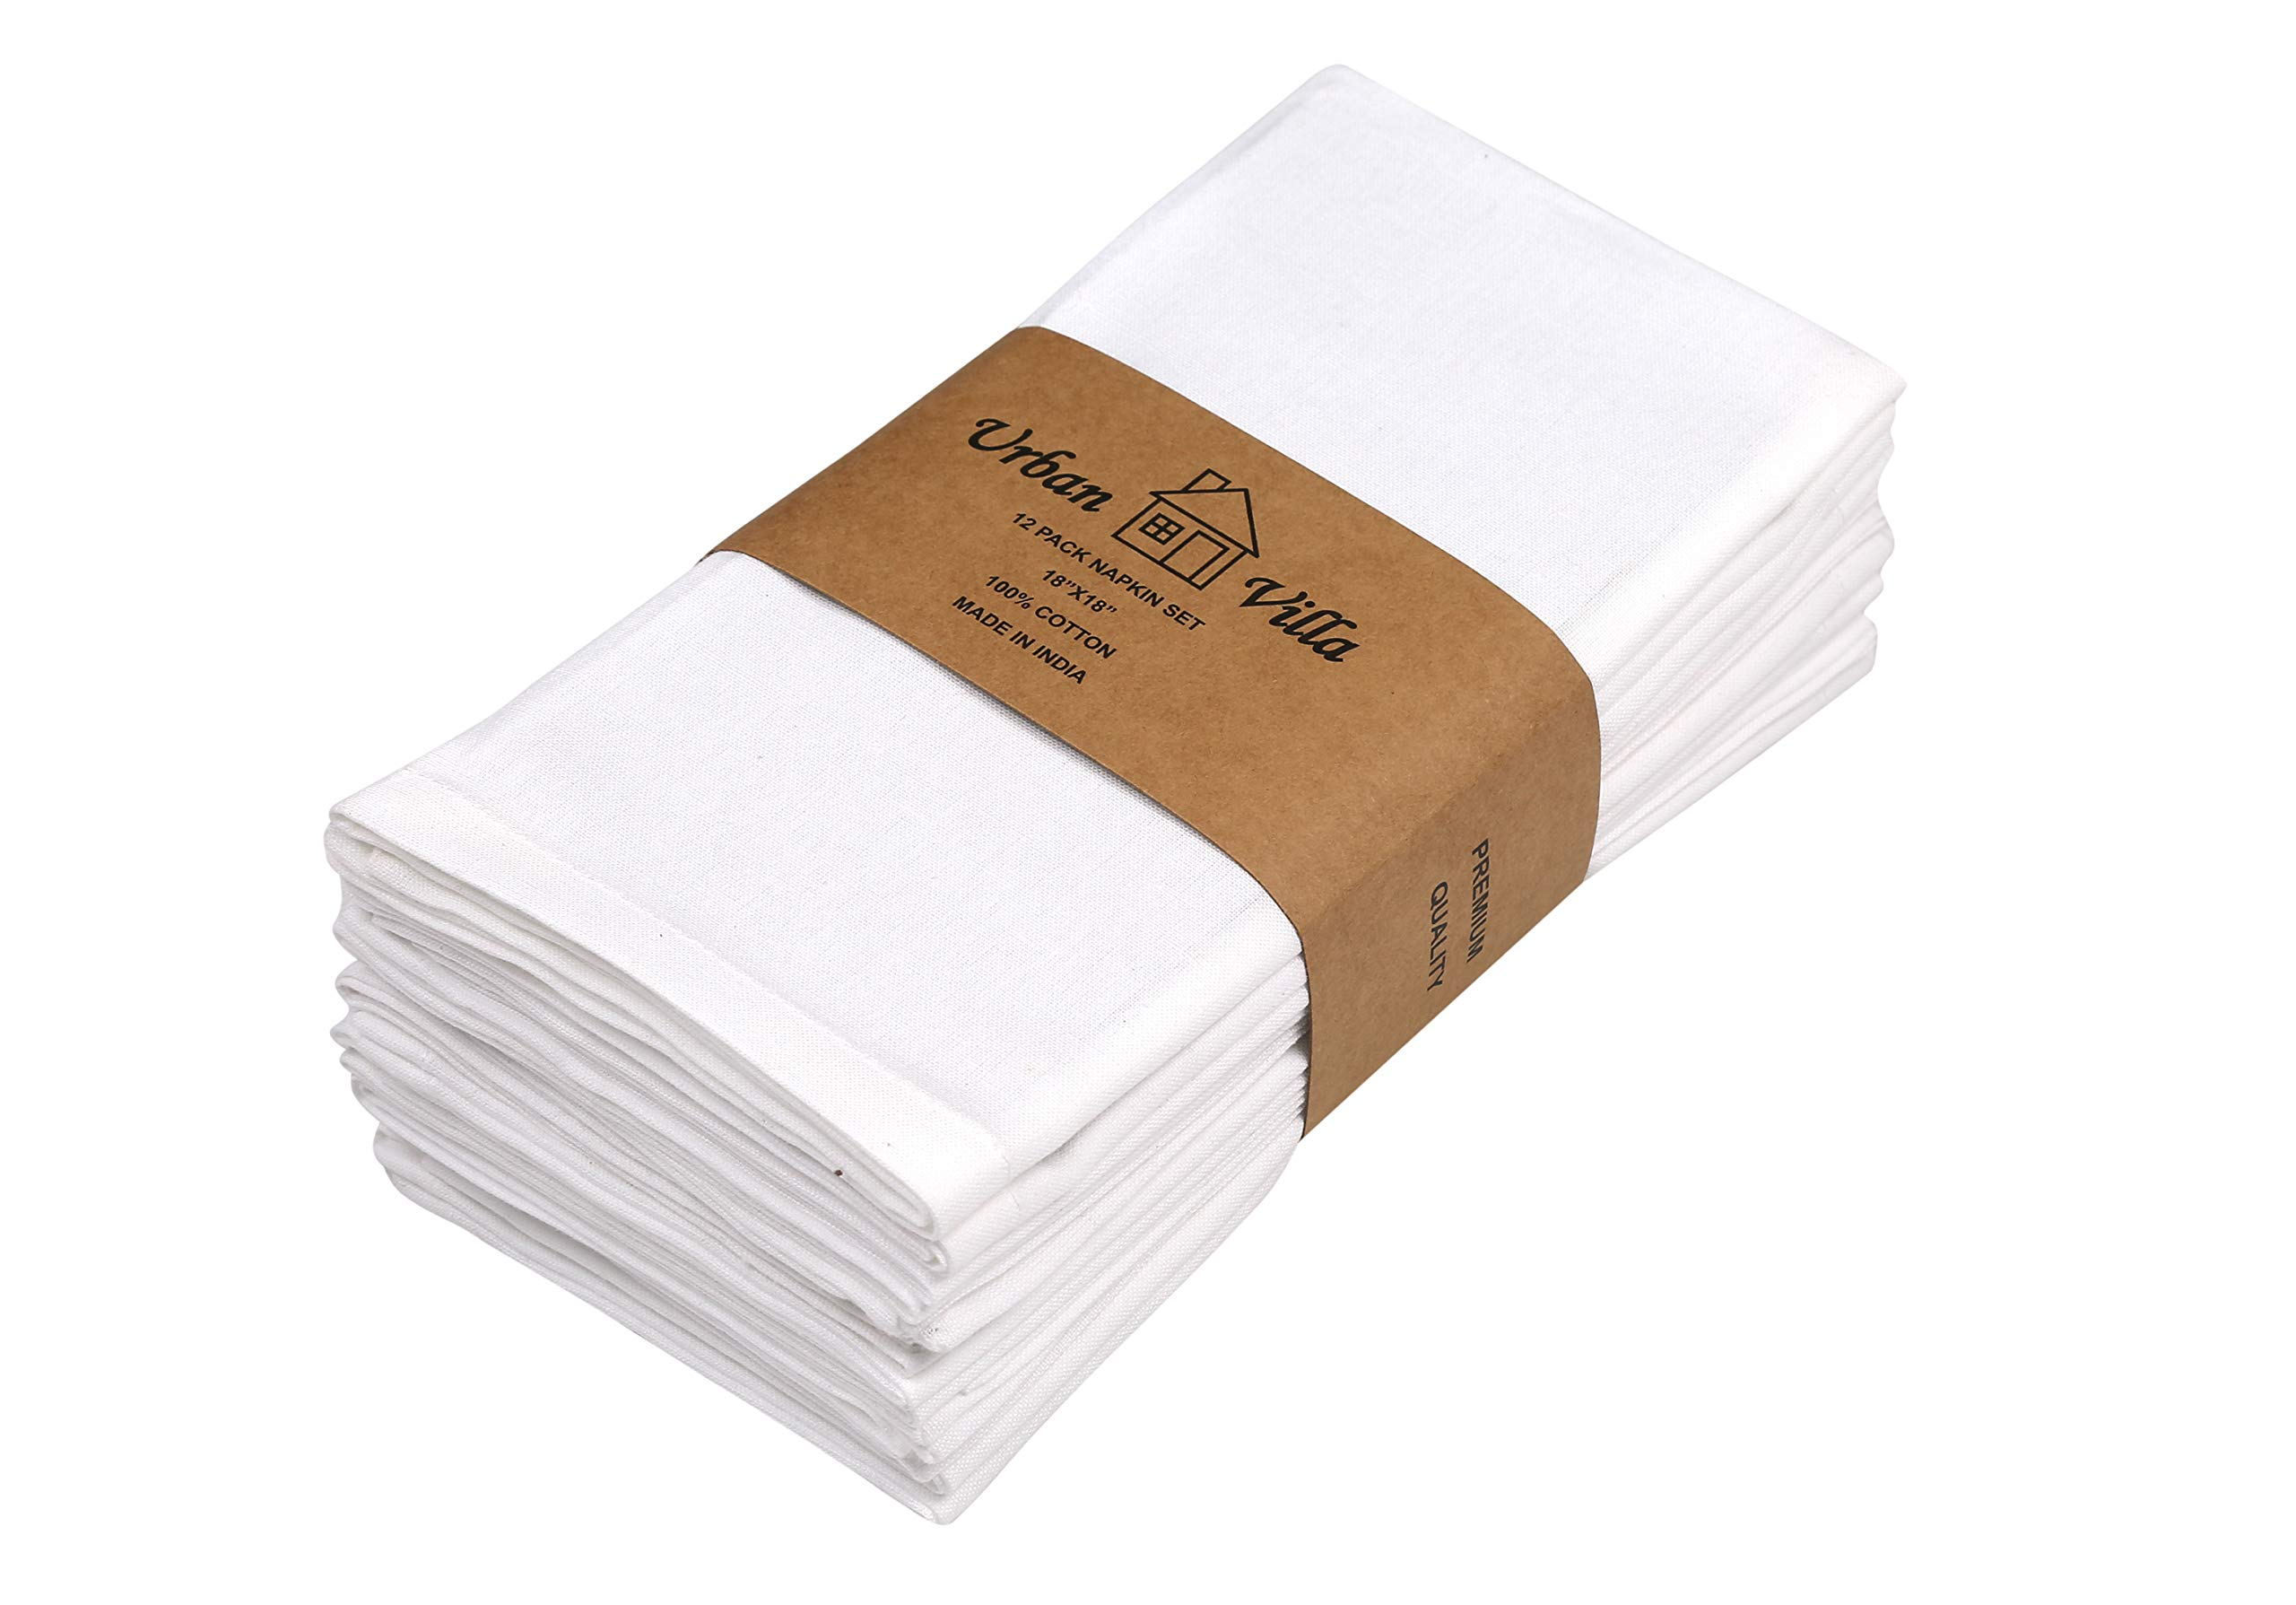 Urban Villa White Solid Flat Weave Ultra Soft, Premium Quality,Dinner Napkins, 100% Cotton, Set of 12, Size 18X18 Inch, White Cloth Napkins with Mitered Corners, Durable Hotel Quality, Pre-washed by Urban Villa